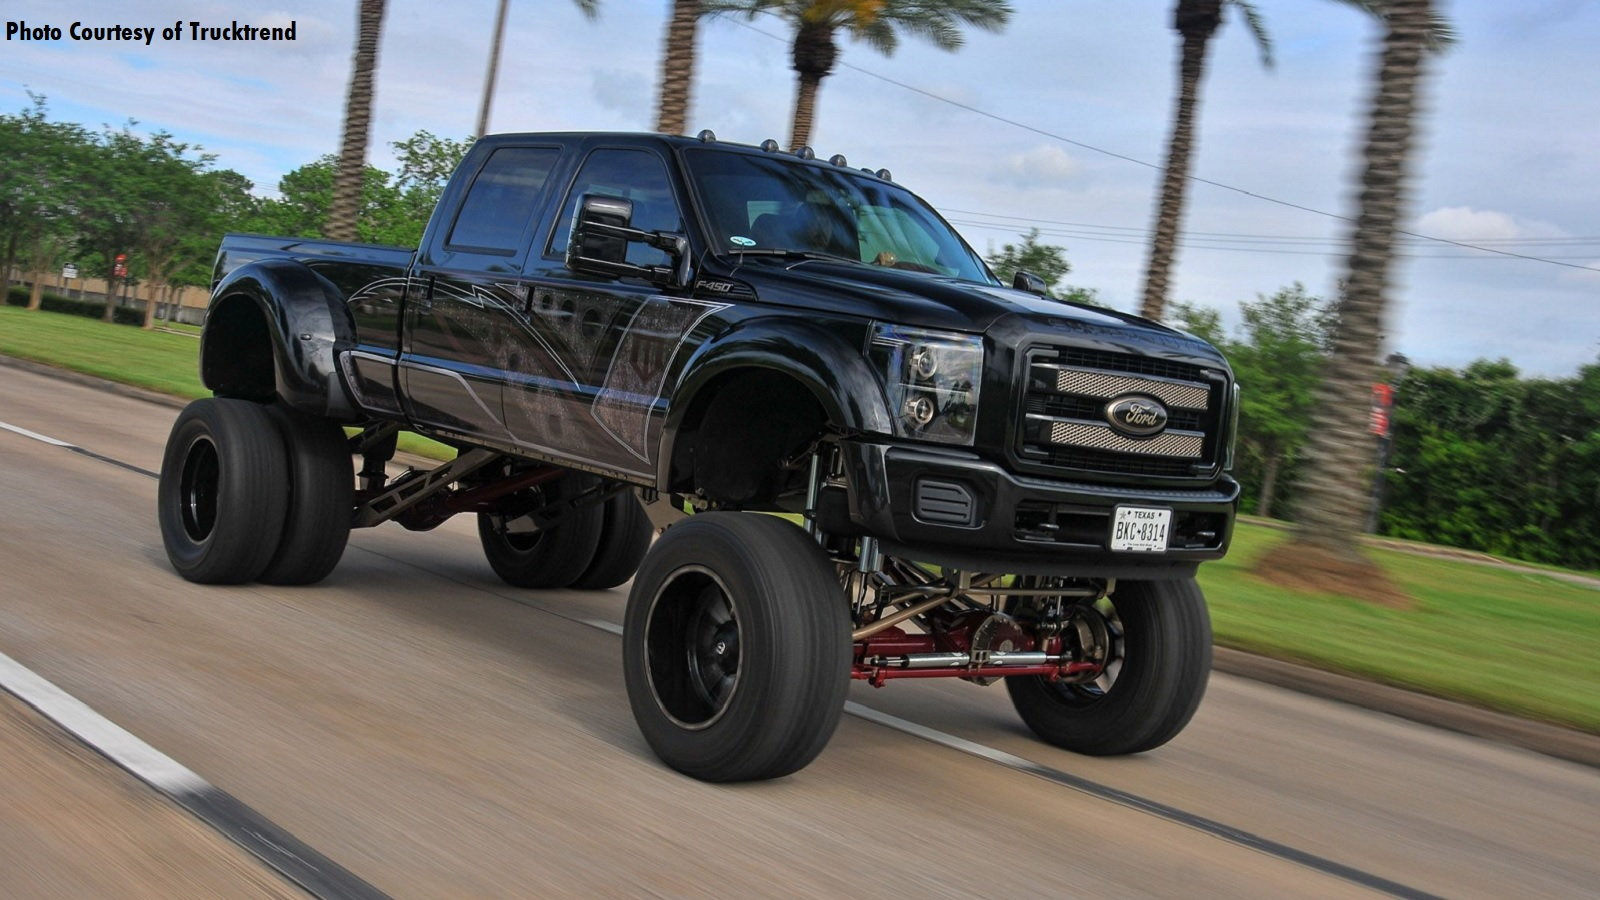 This F-450 Commands the Road